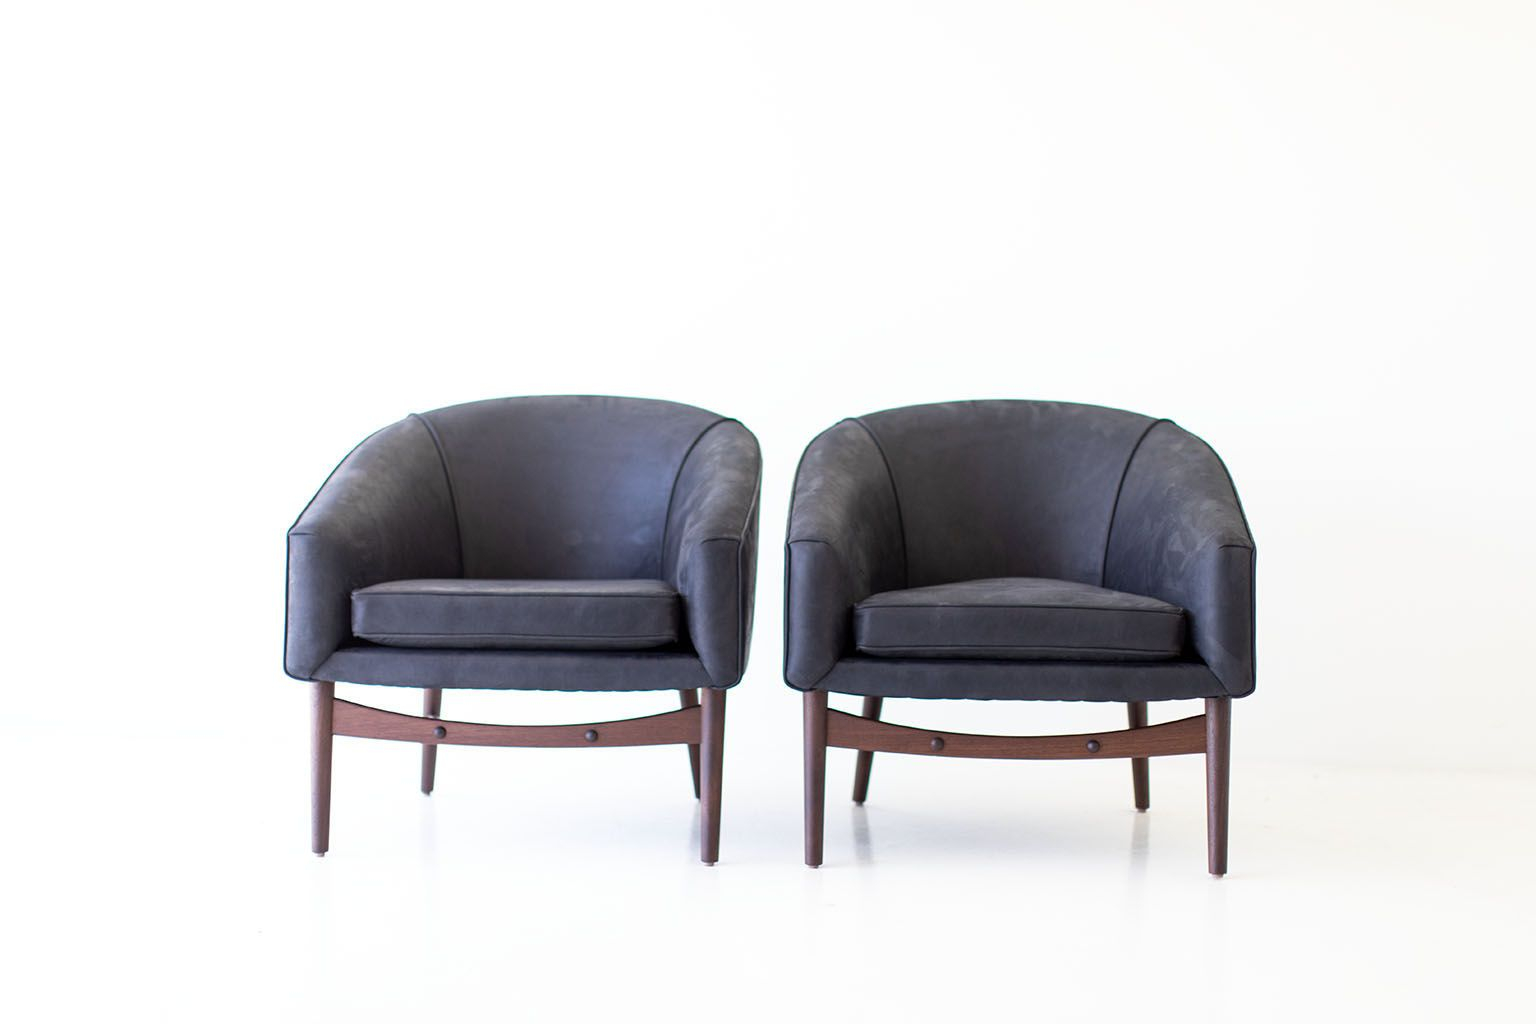 Lawrence-Peabody-club-chairs-Craft-Associates-Furniture-04